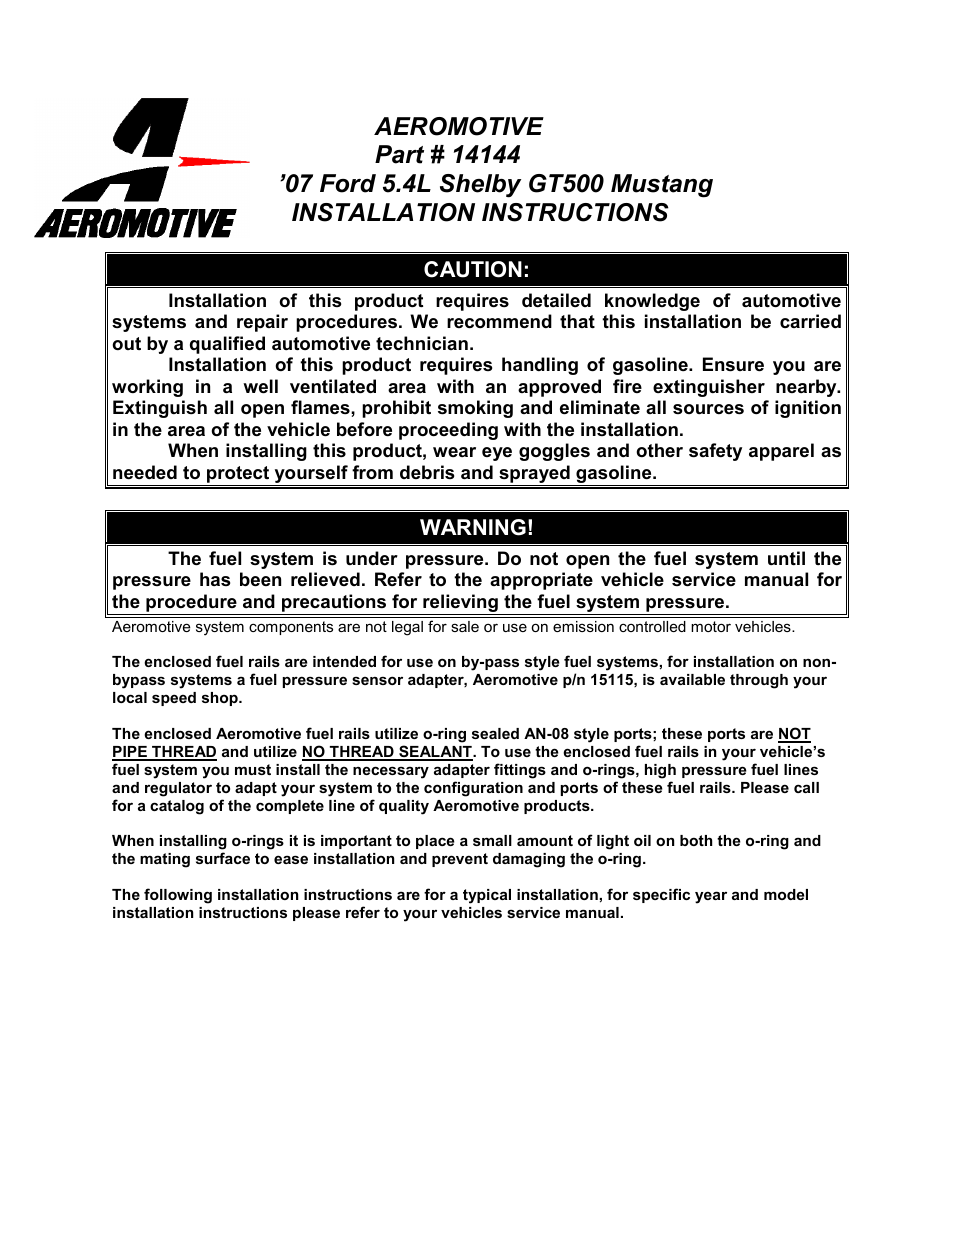 Aeromotive 14144 - 07-09 5 4L GT500 FUEL RAIL KIT User Manual | 4 pages